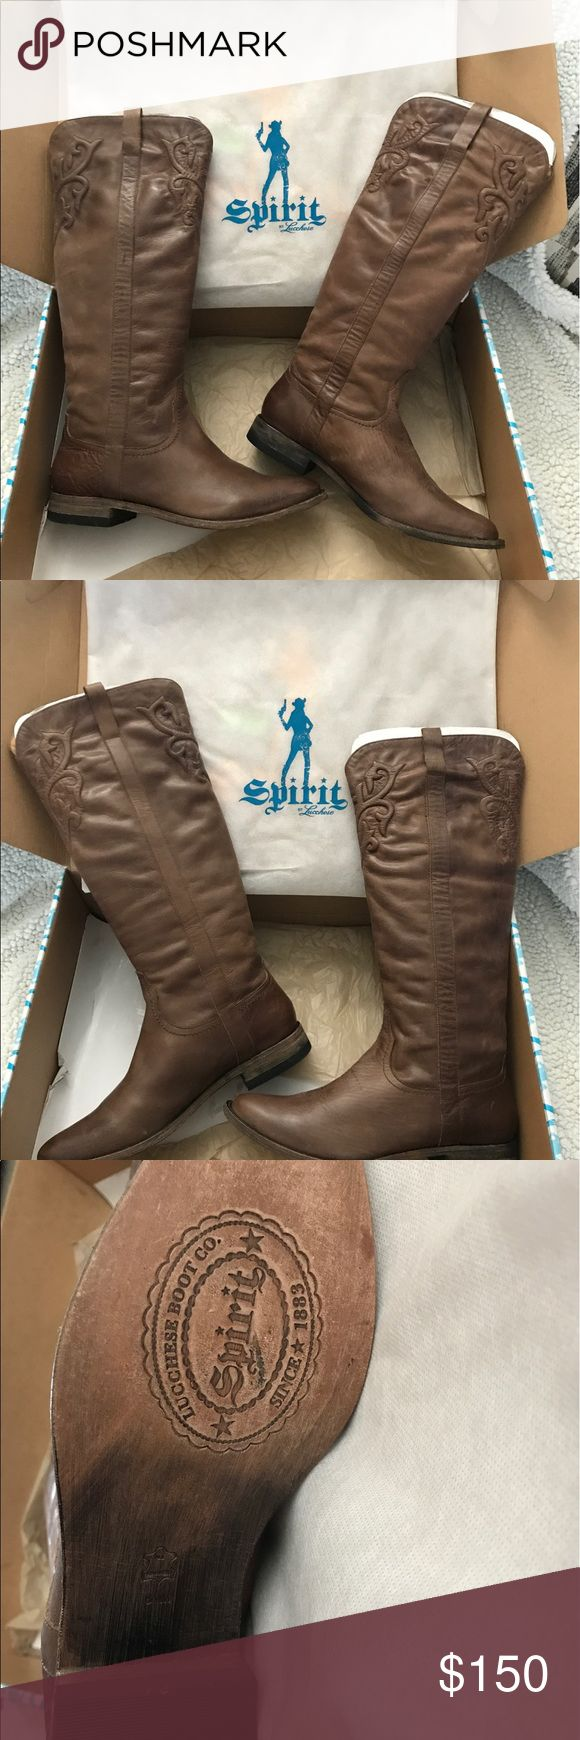 Leather riding boots Knee high riding boots medium brown flat heel new never warn comes in protector bag and box Lucchese Shoes Heeled Boots